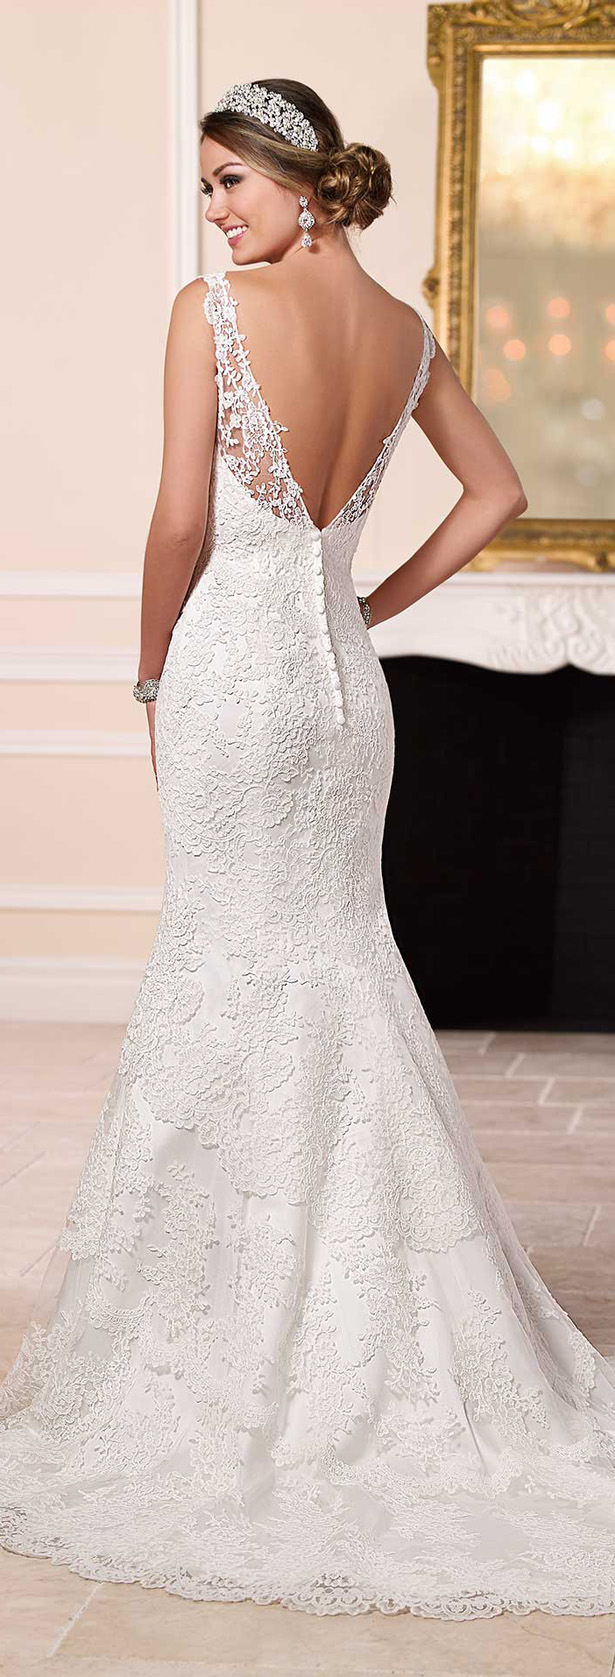 Where Can I Buy Cheap Wedding Dresses